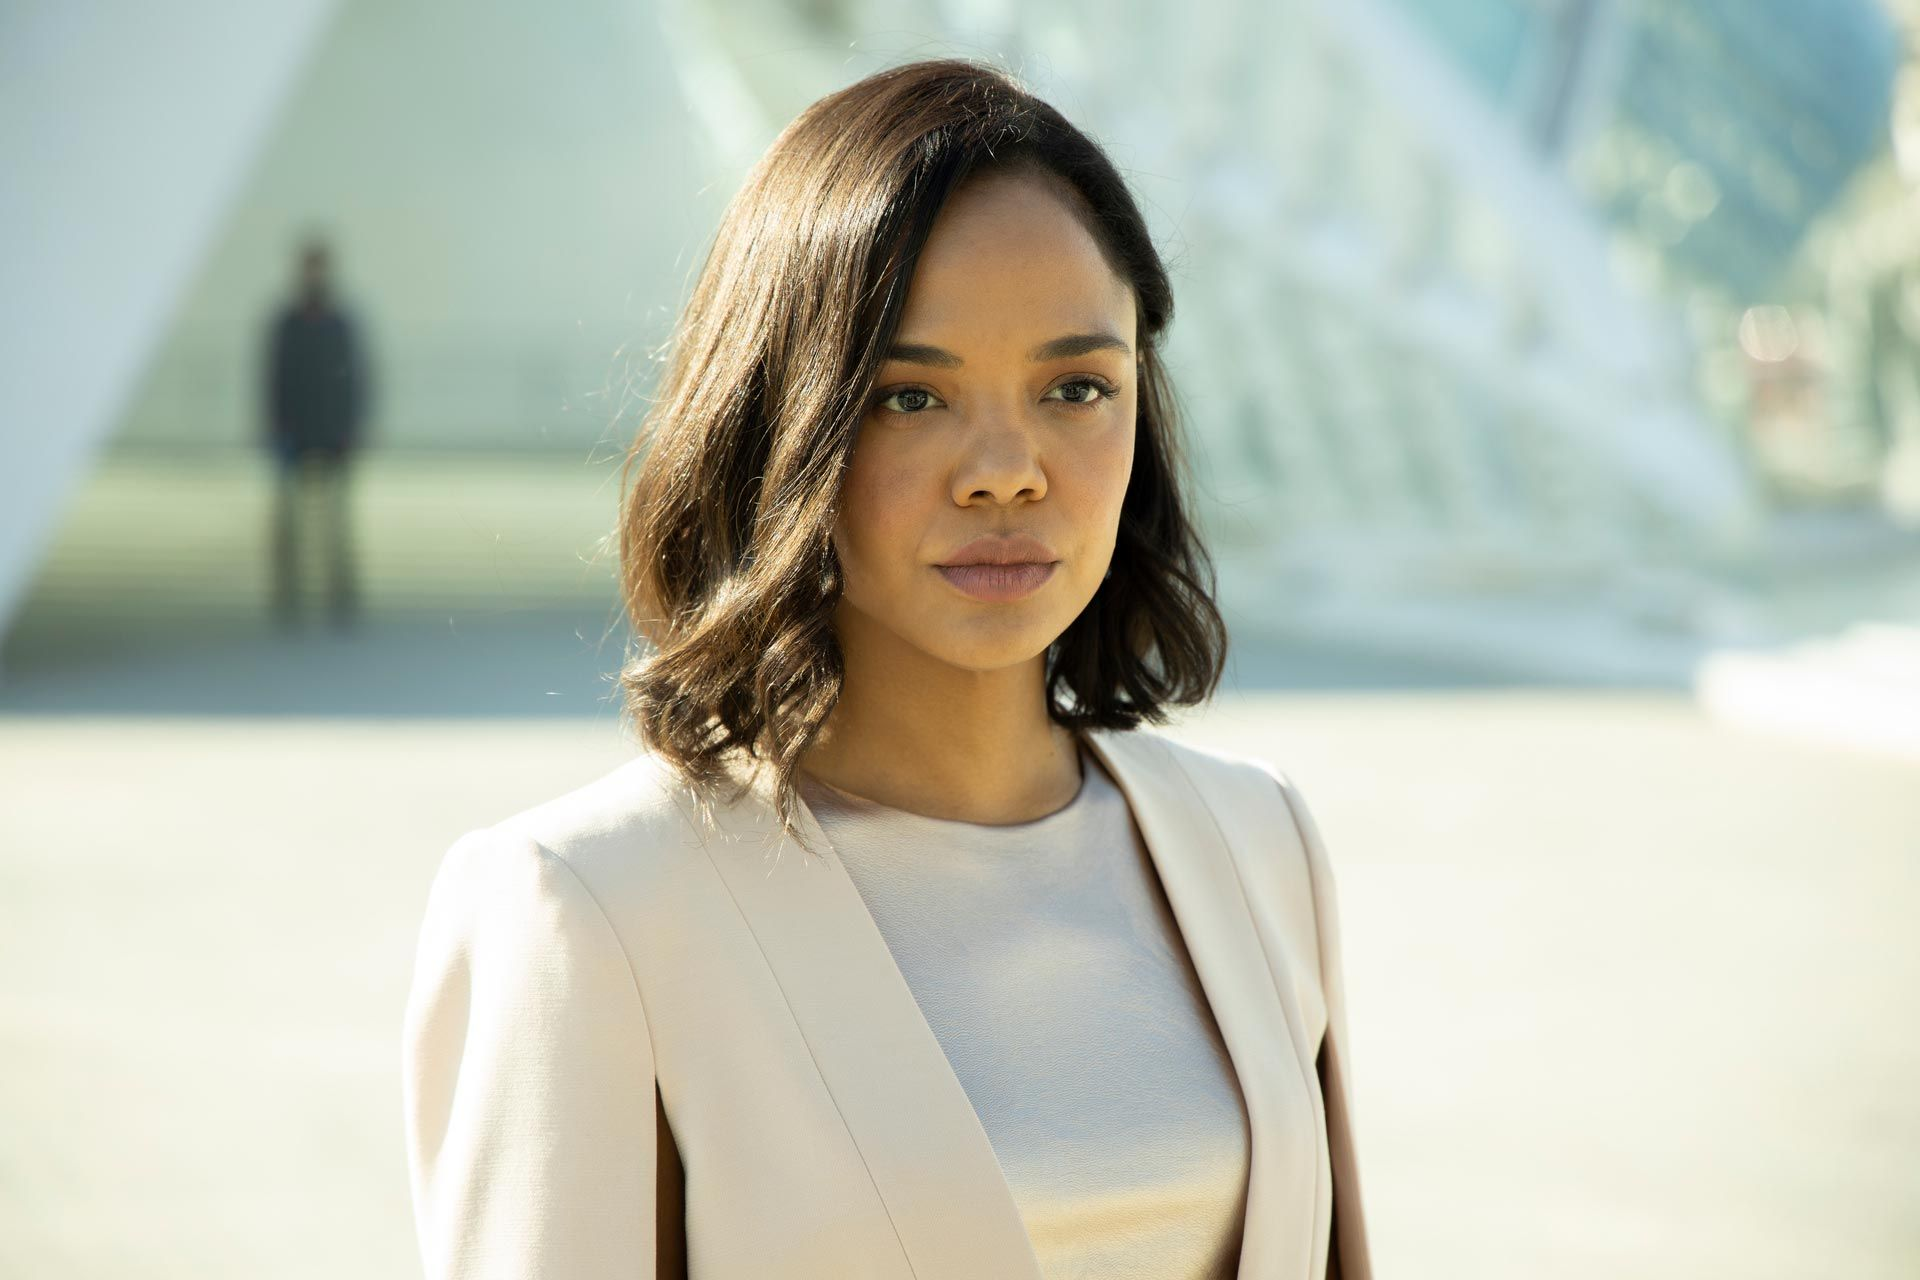 Westworld season 4 - release date, cast and more